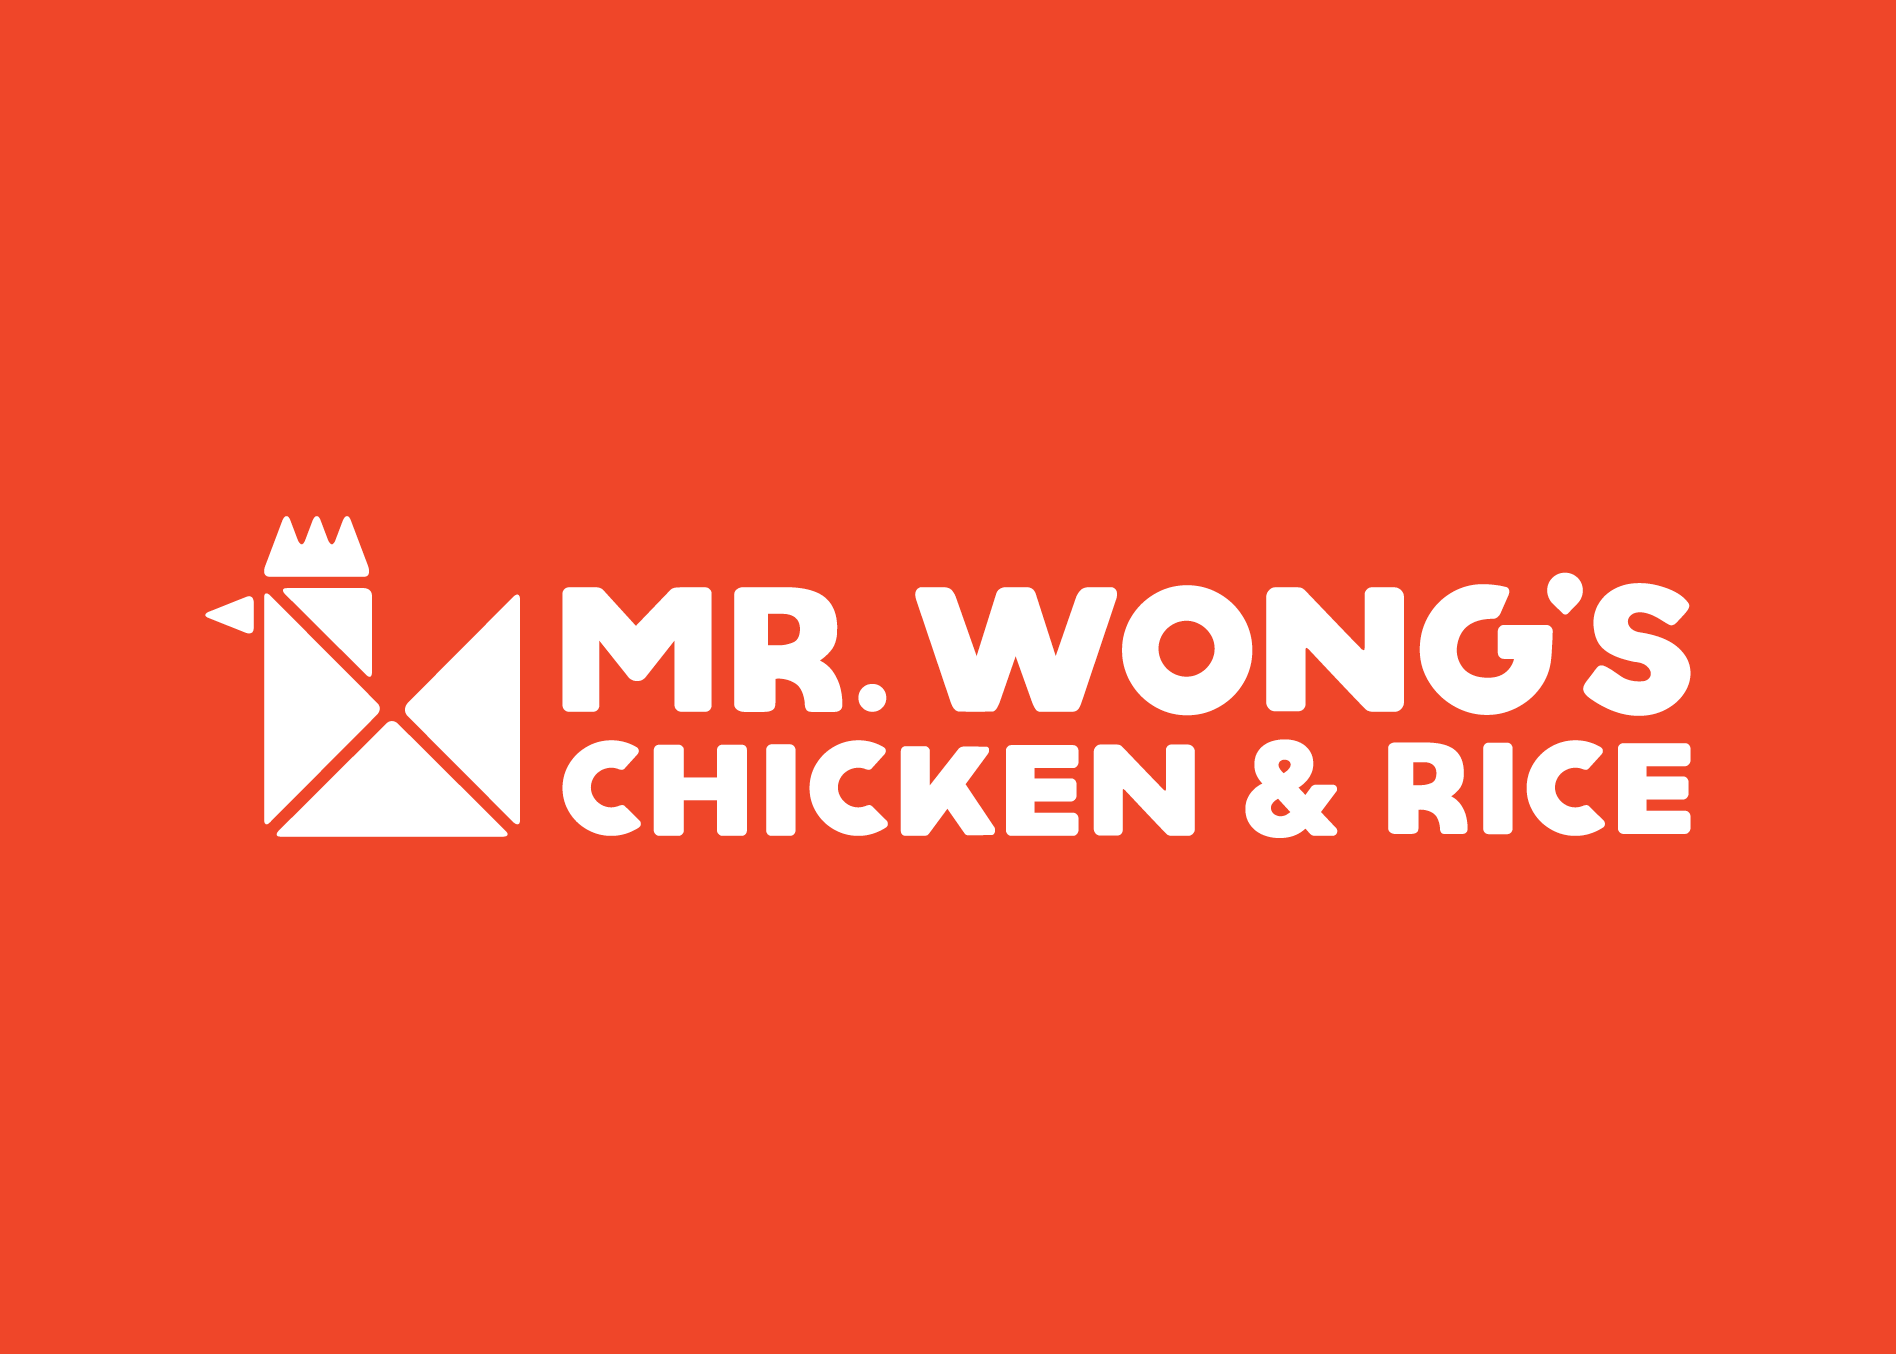 chicken food logo graphic design